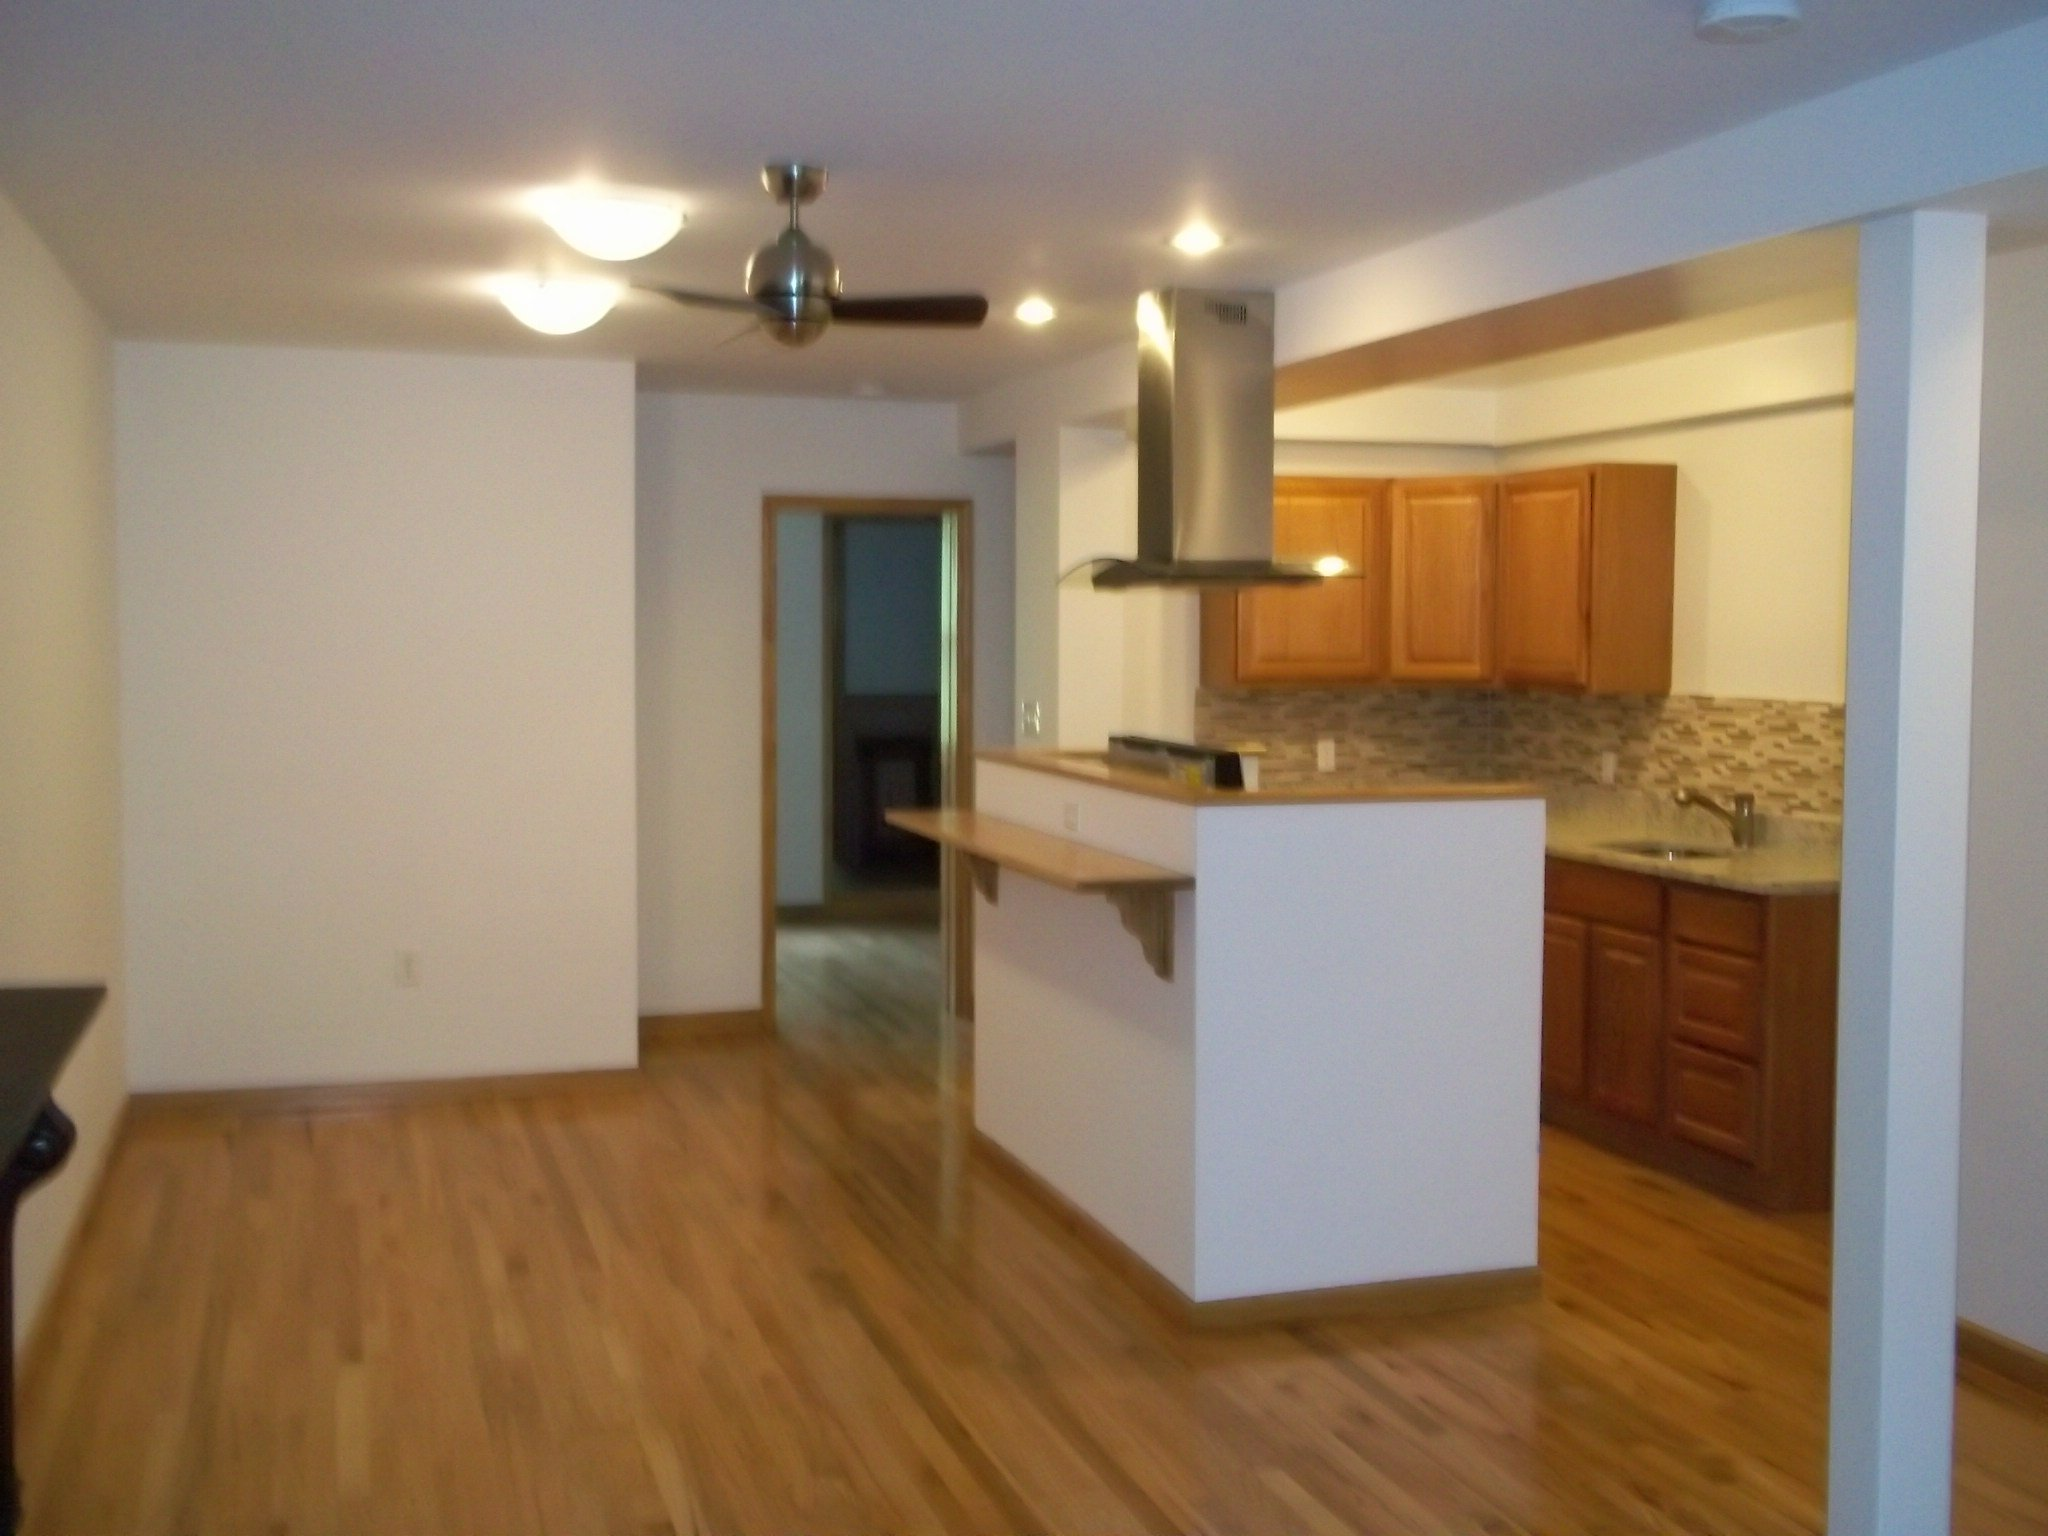 Studio Apt Ideas Stuyvesant Heights 1 Bedroom Apartment For Rent Brooklyn